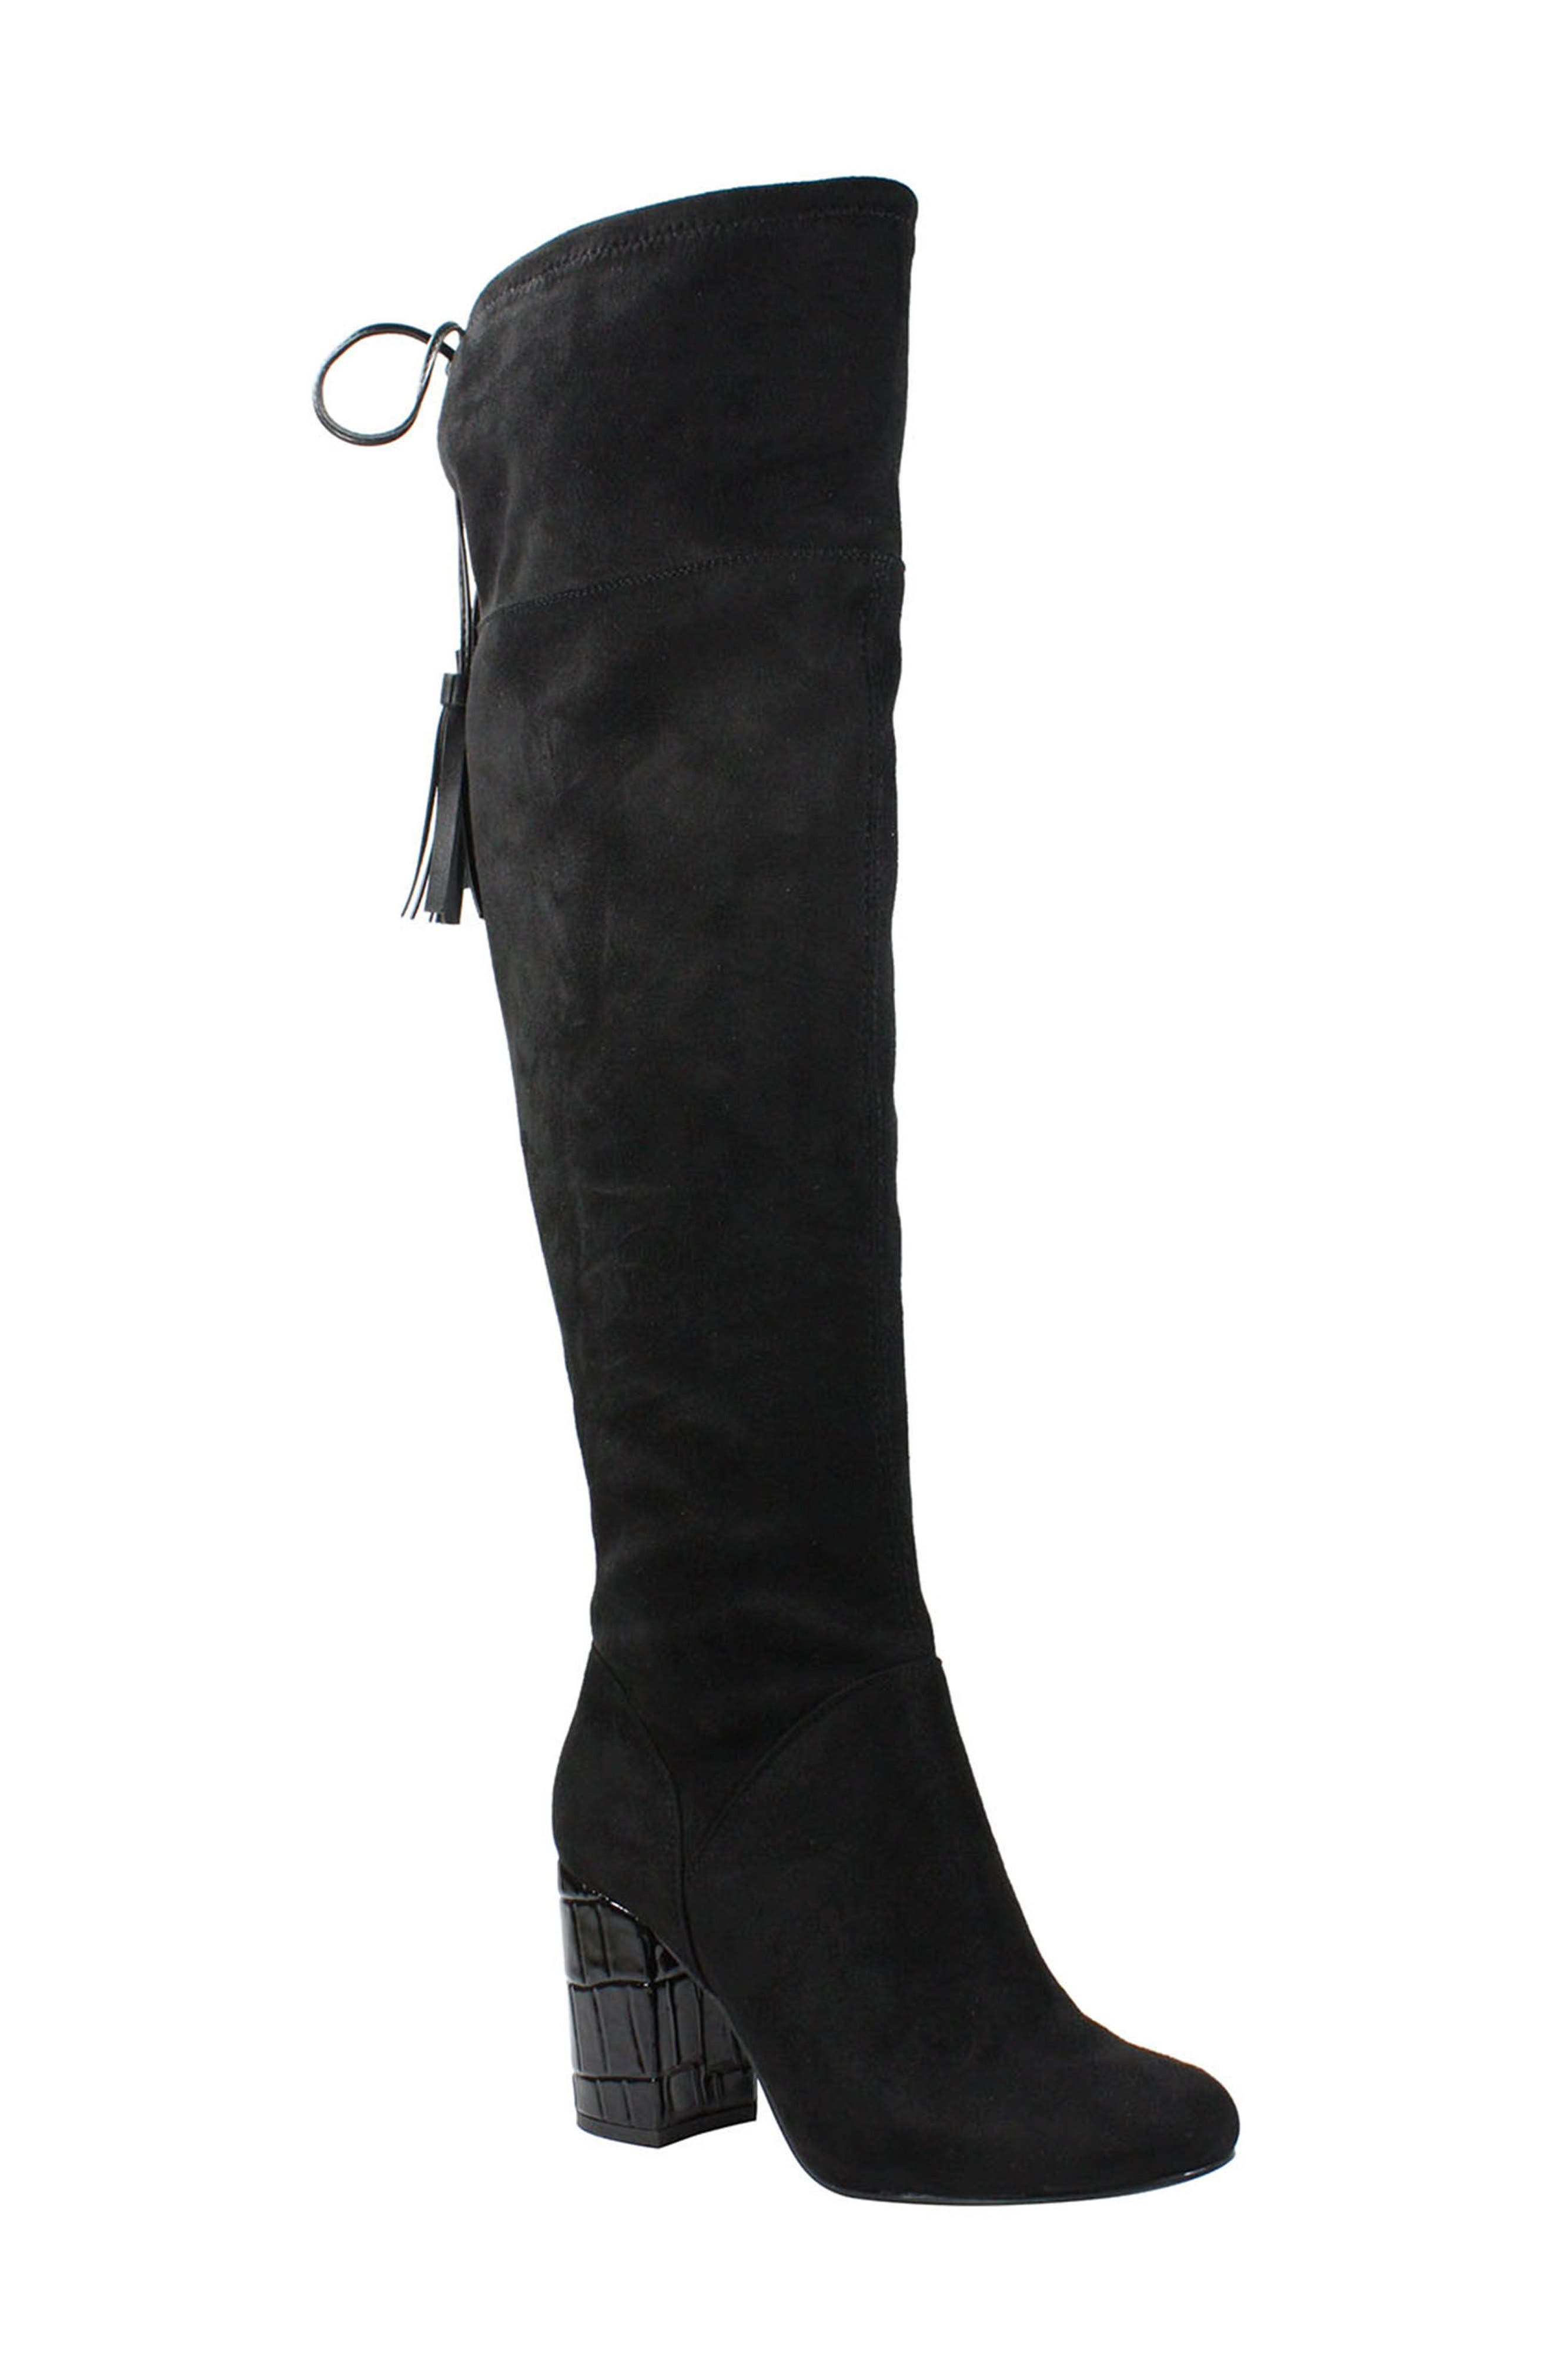 Calcari Over the Knee Boot,                         Main,                         color, BLACK SUEDE